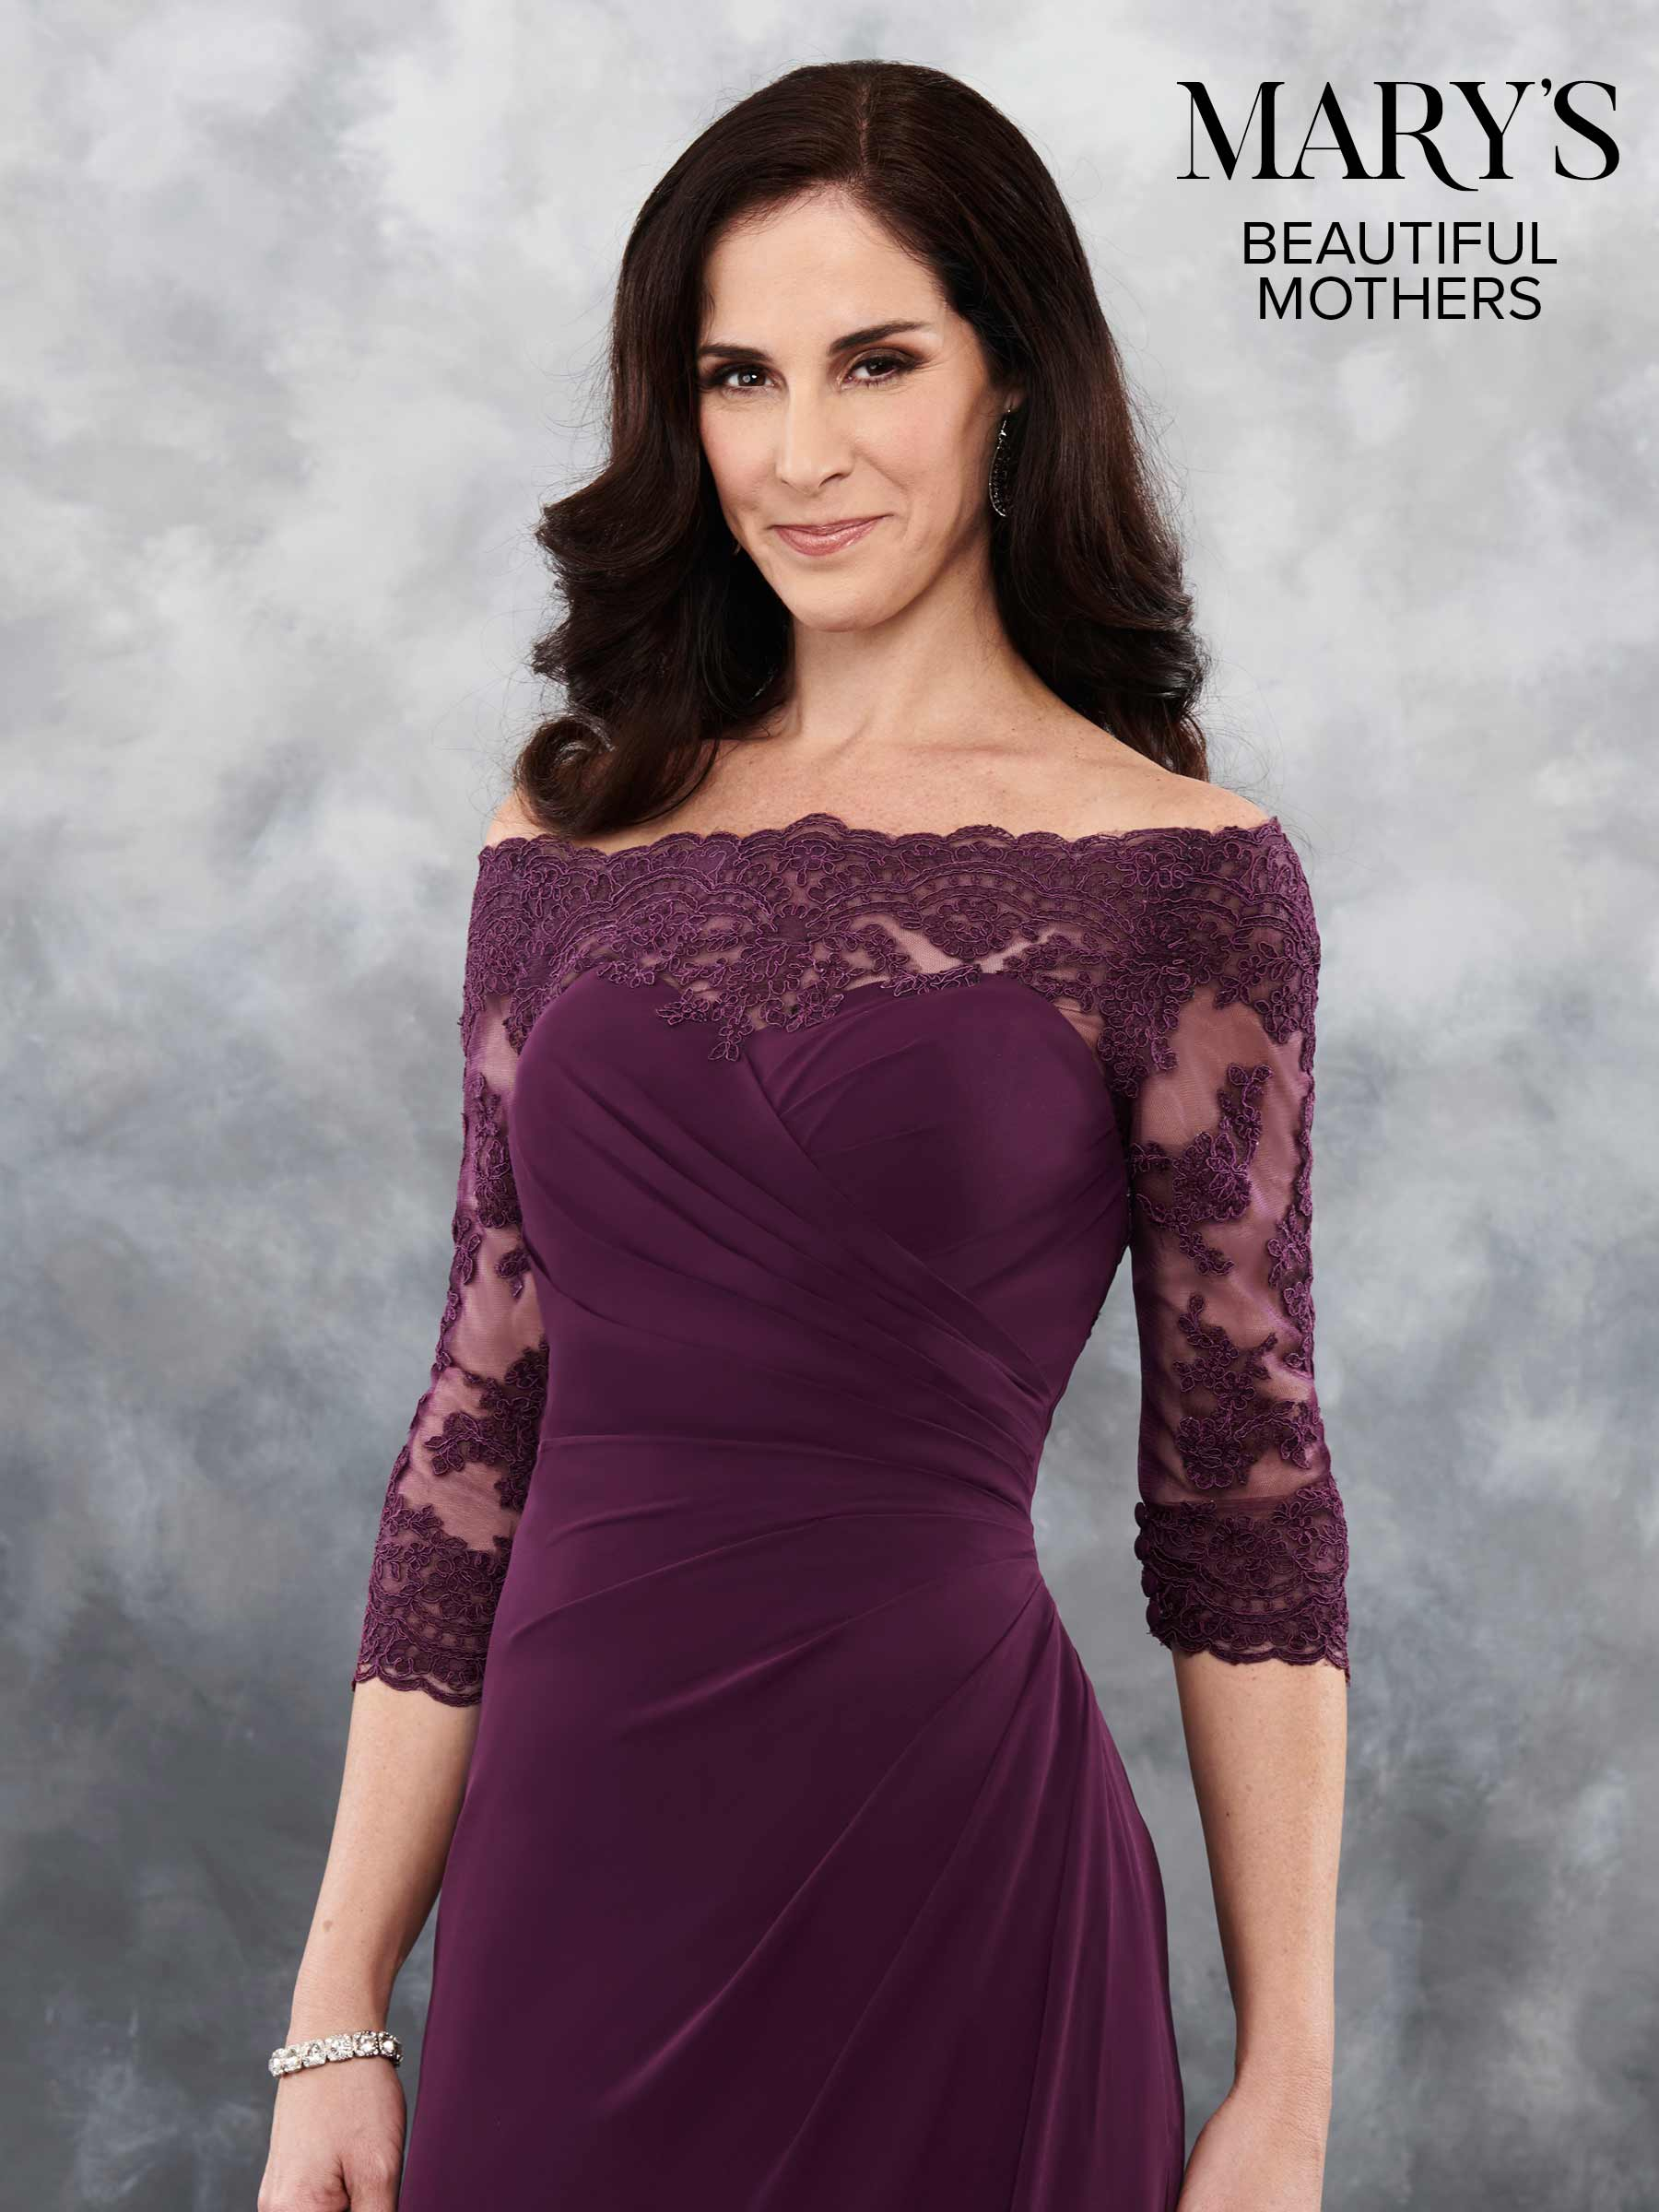 Mother Of The Bride Dresses | Beautiful Mothers | Style - MB8025